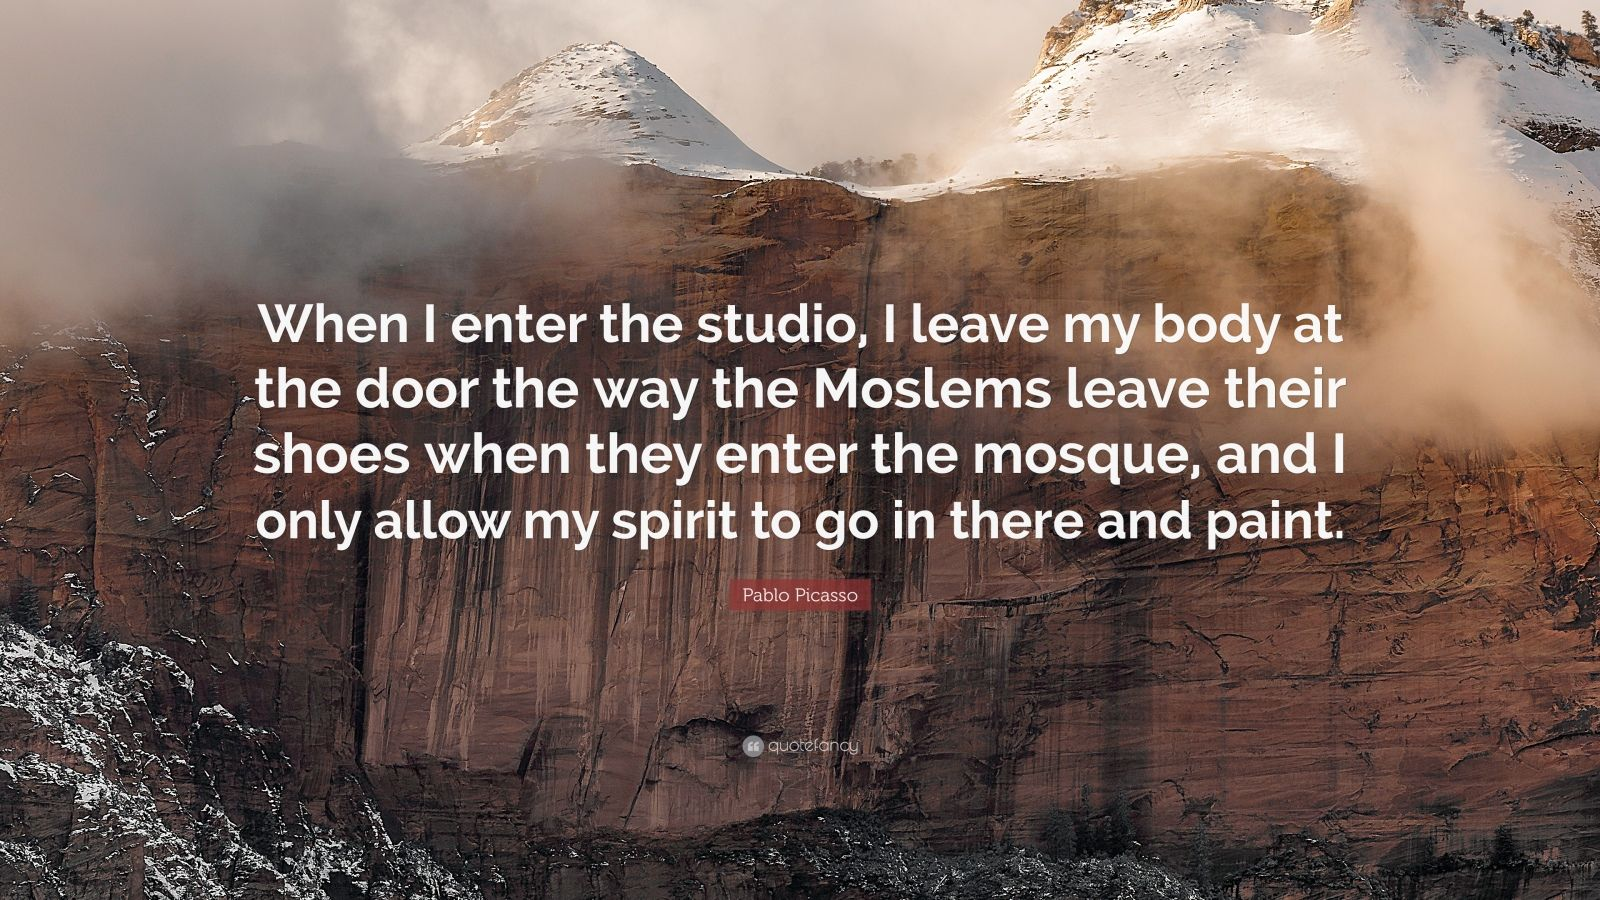 "Pablo Picasso Quote: ""When I enter the studio, I leave my body at the door the way the Moslems leave their shoes when they enter the mosque, and I only allow my spirit to go in there and paint."""